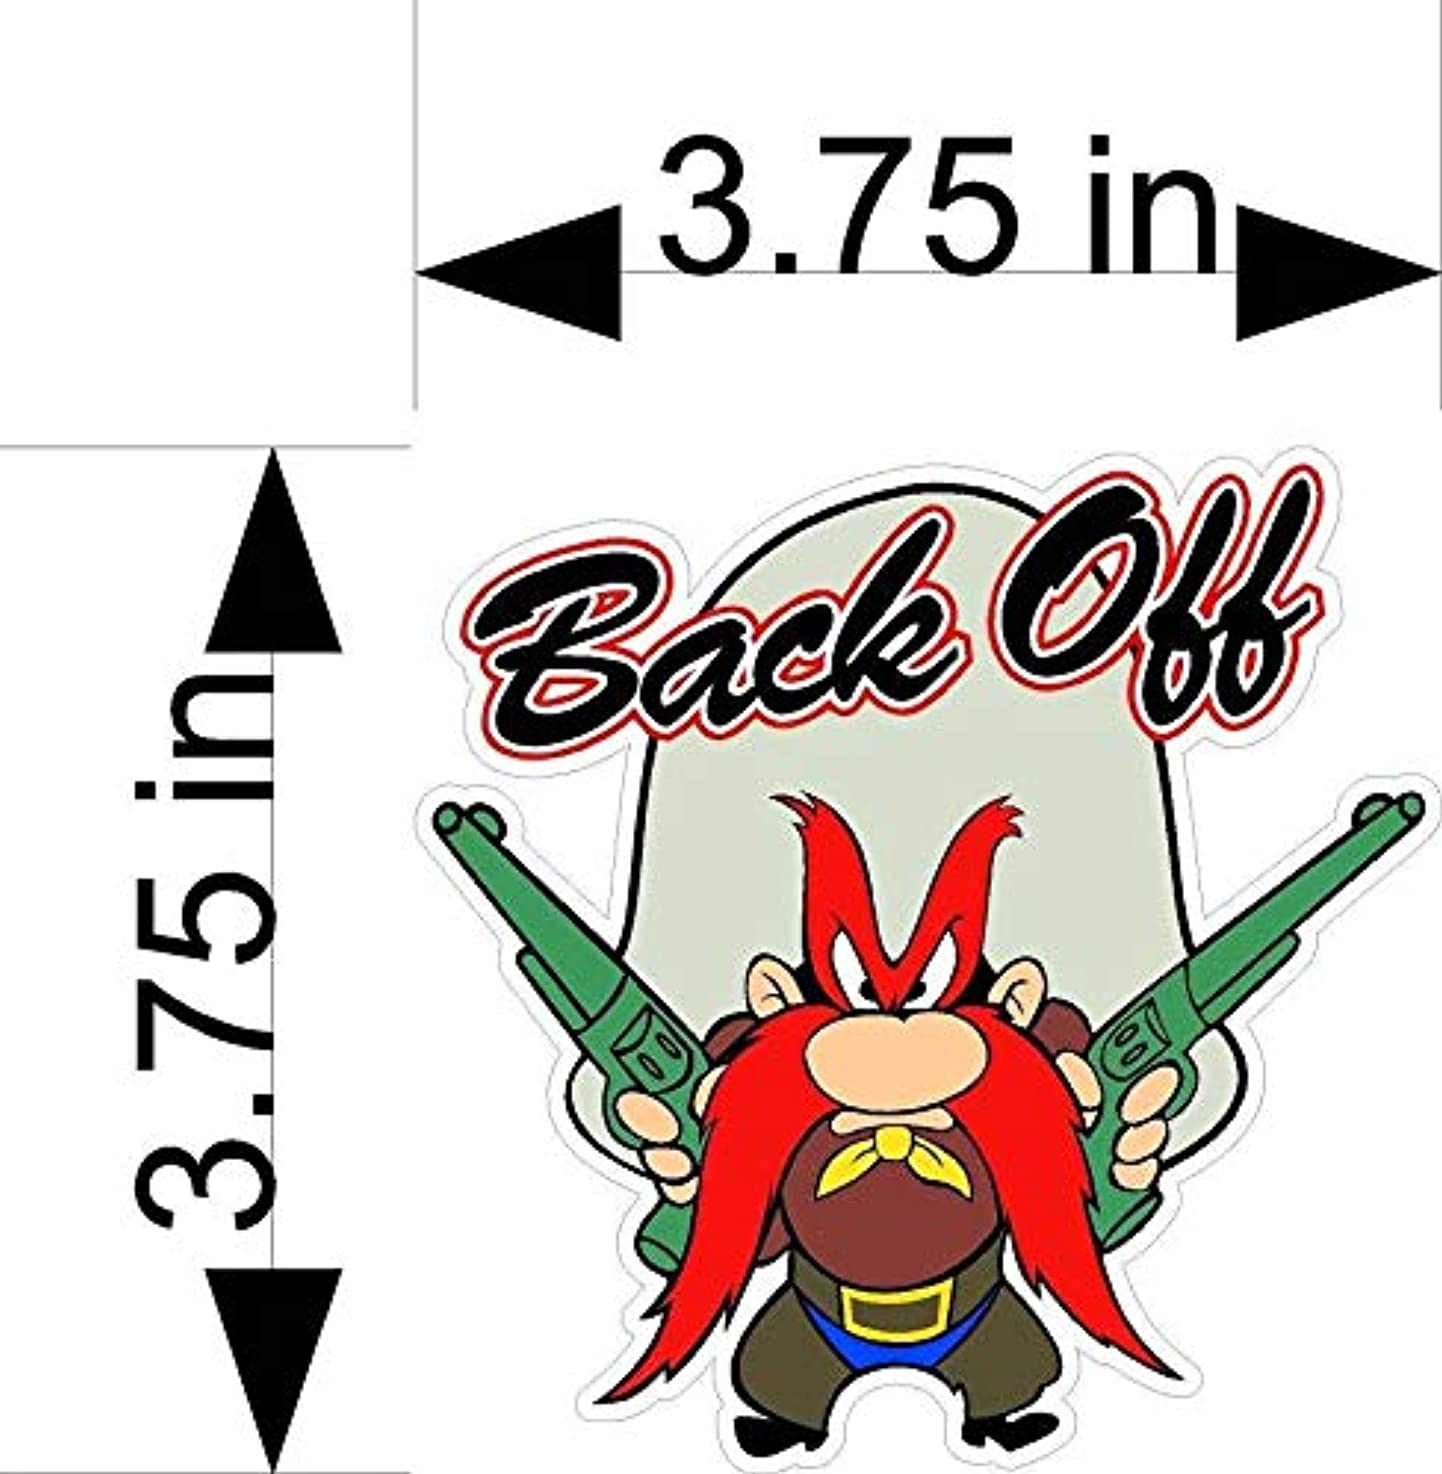 Crazy Discount Yosemite SAM Back Off Vinyl Sticker Decal Outside Inside Using for Laptops Water Bottles Cars Trucks Bumpers Walls, 3.75